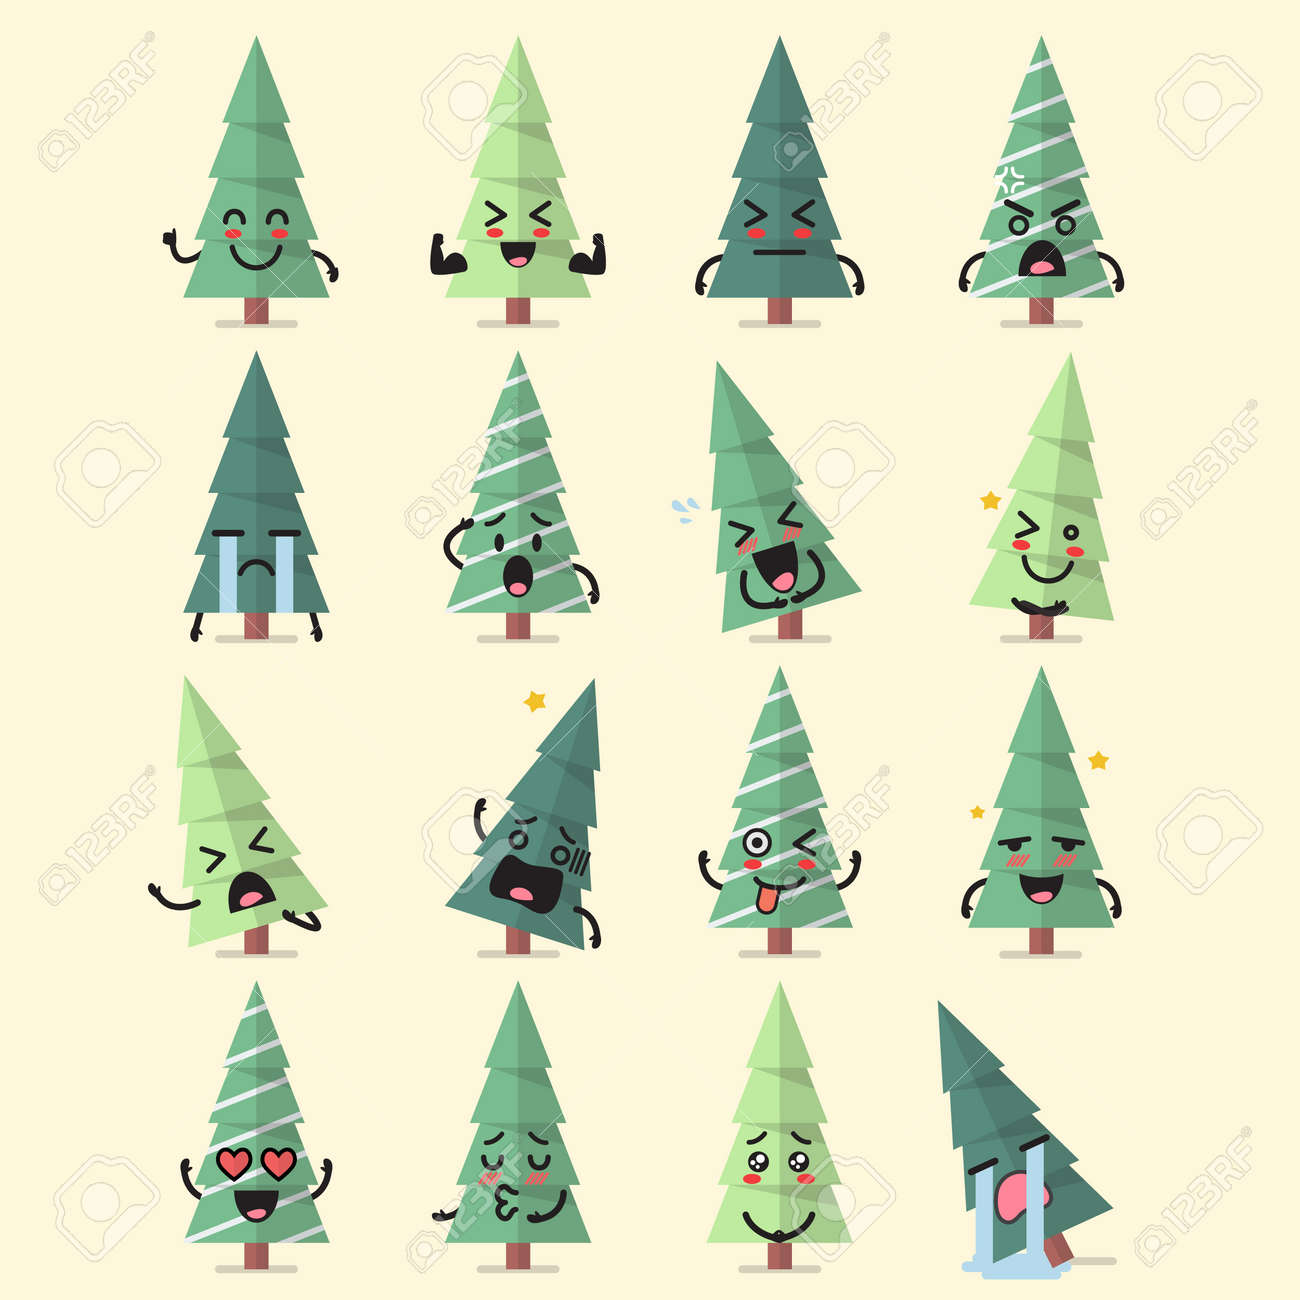 Christmas Tree Emoji.Christmas Tree Character Emoji Set Funny Cartoon Emoticons